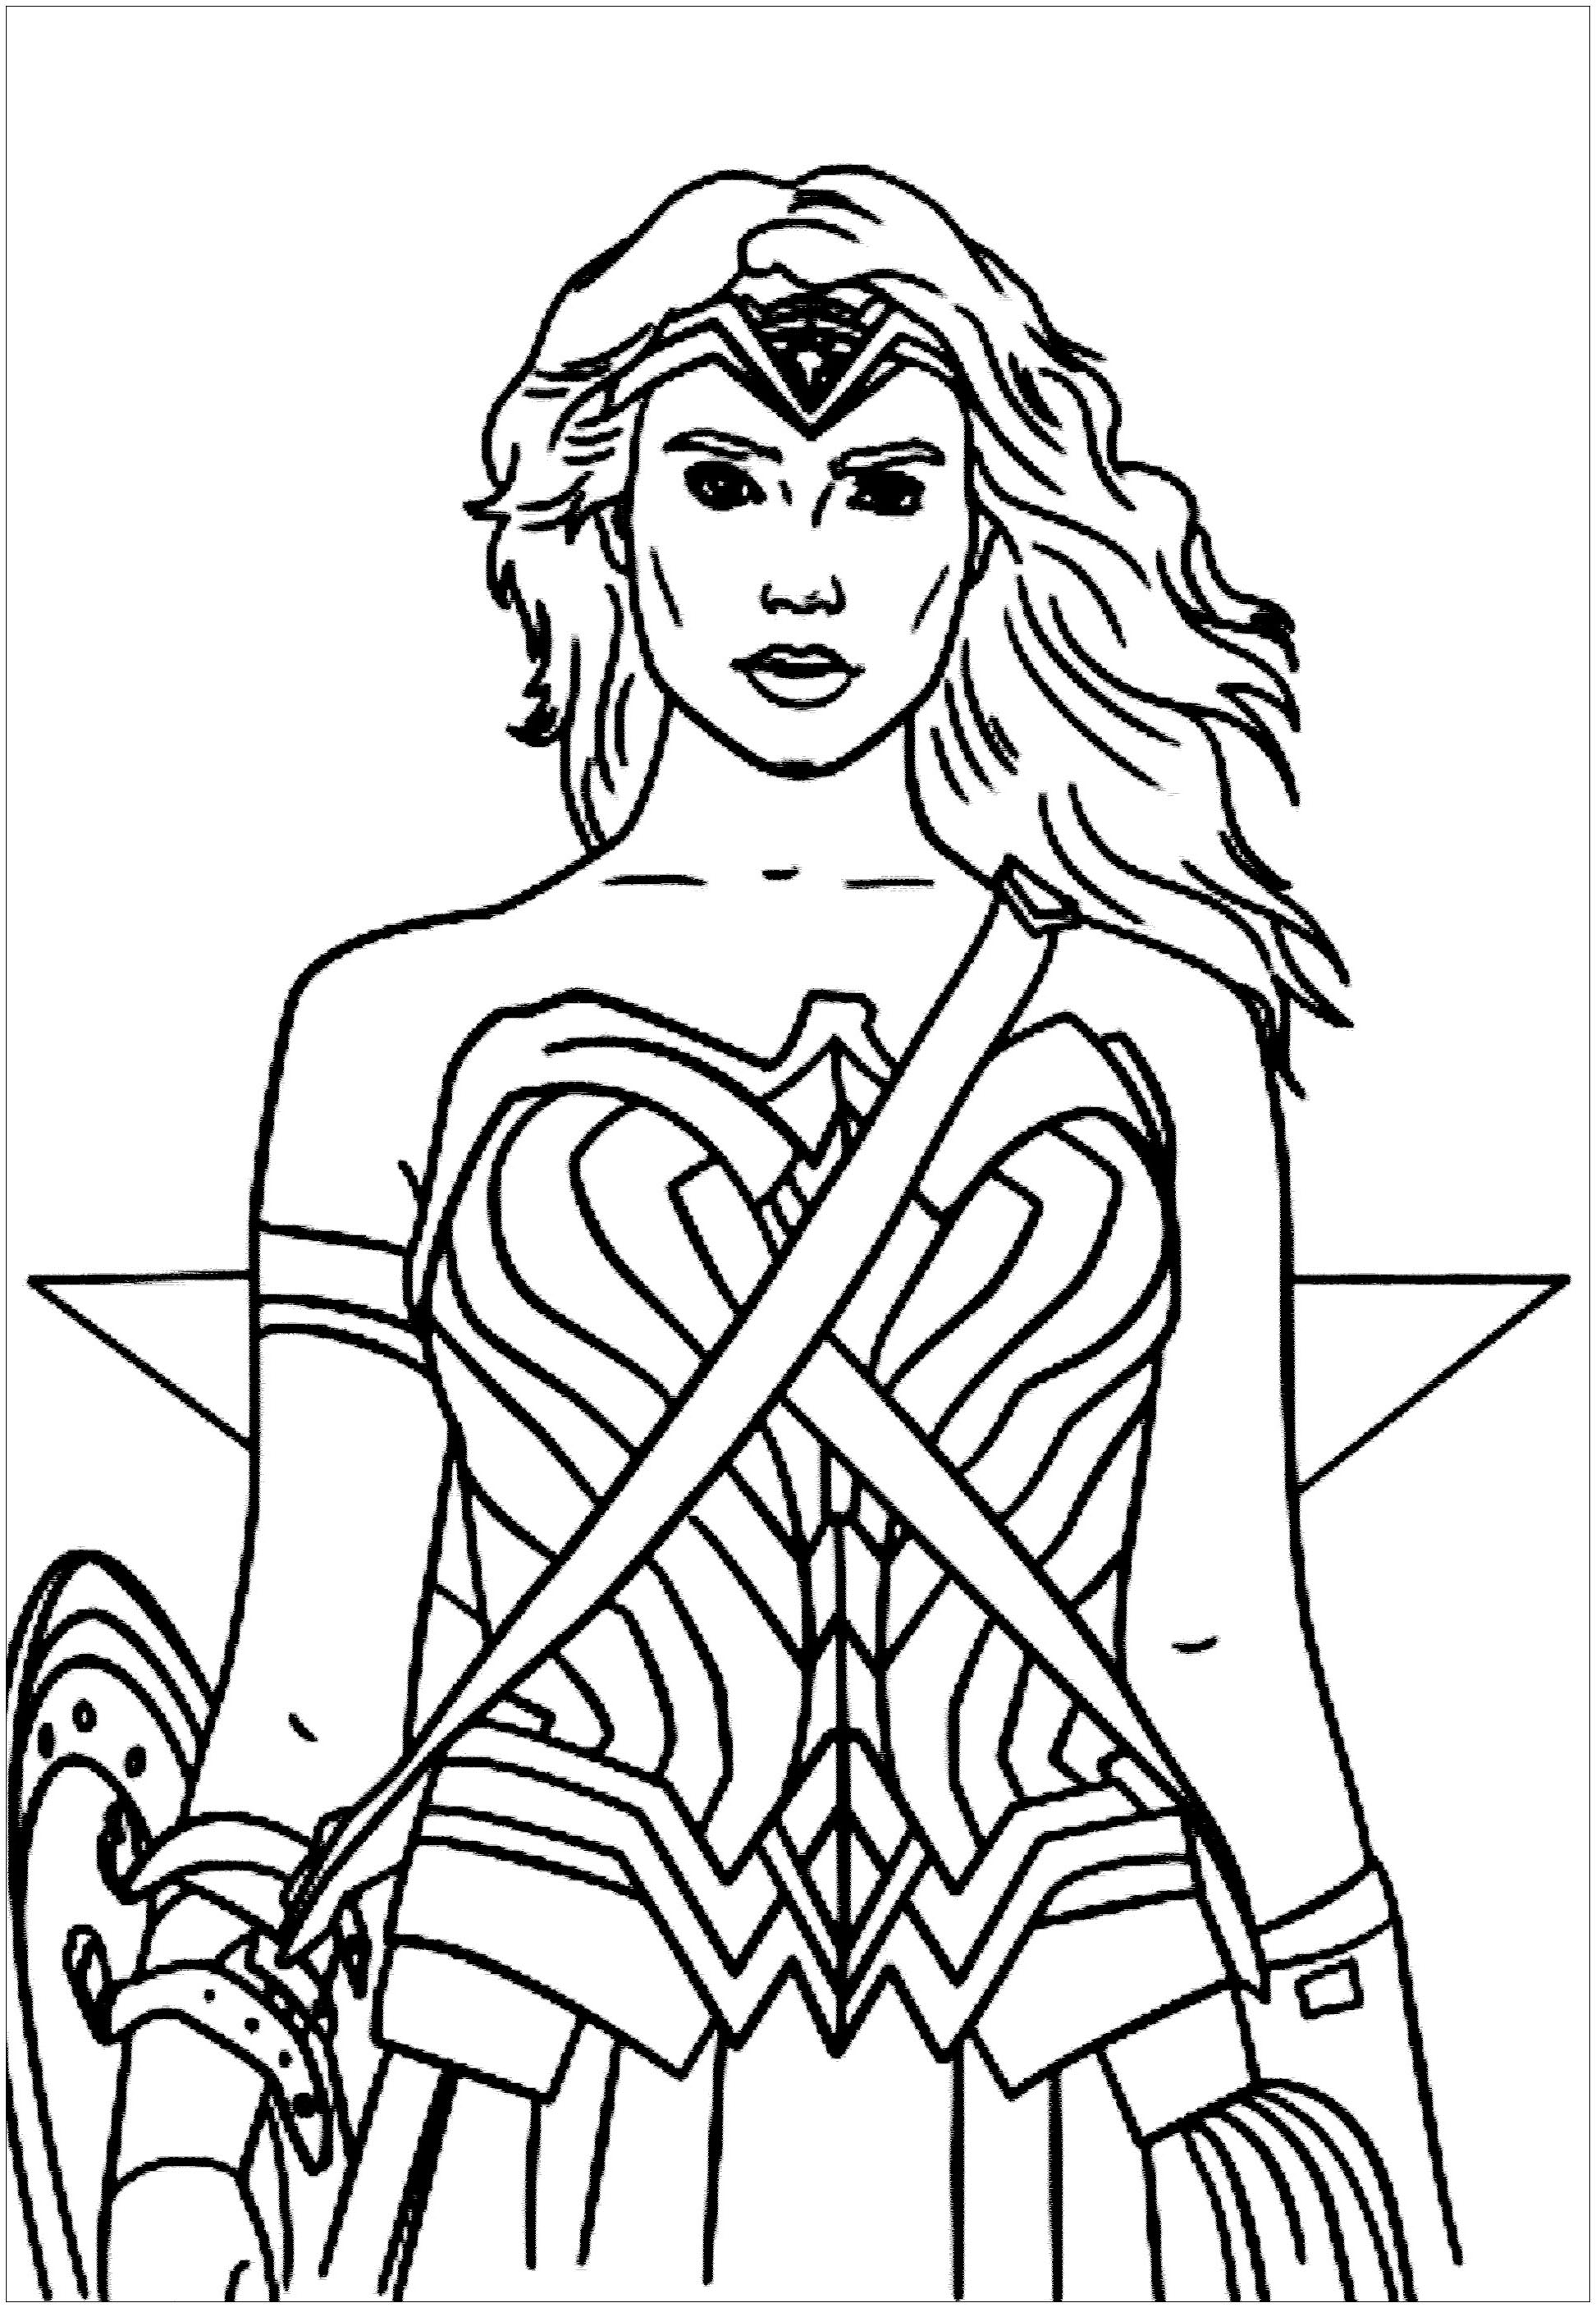 Wonder Woman - Wonder Woman Kids Coloring Pages